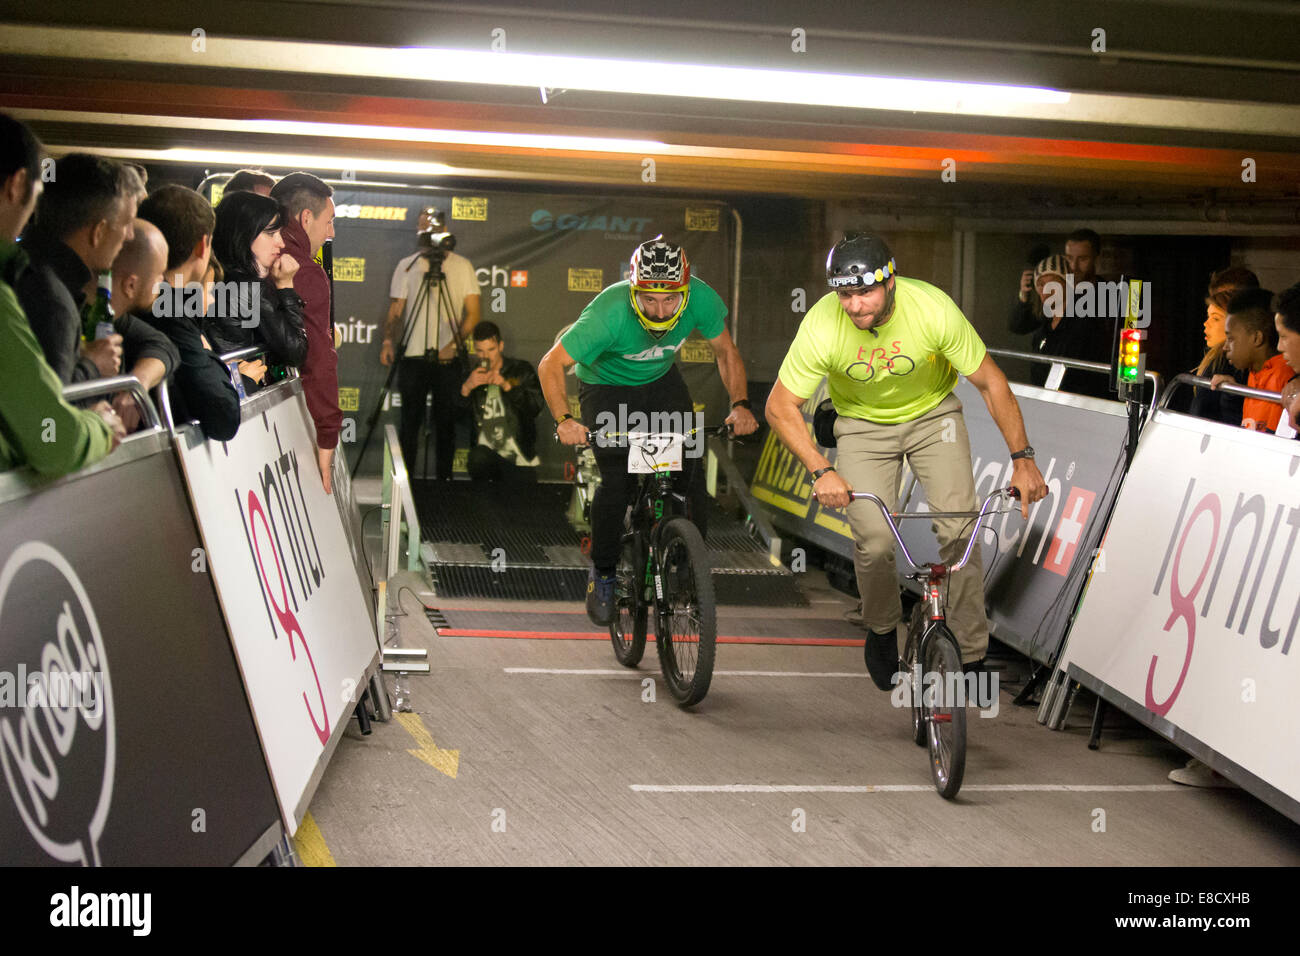 Rob REED & David JAQUIN at Parkour Ride a multi-discipline cycling event held in an abandoned multi-storey car - Stock Image